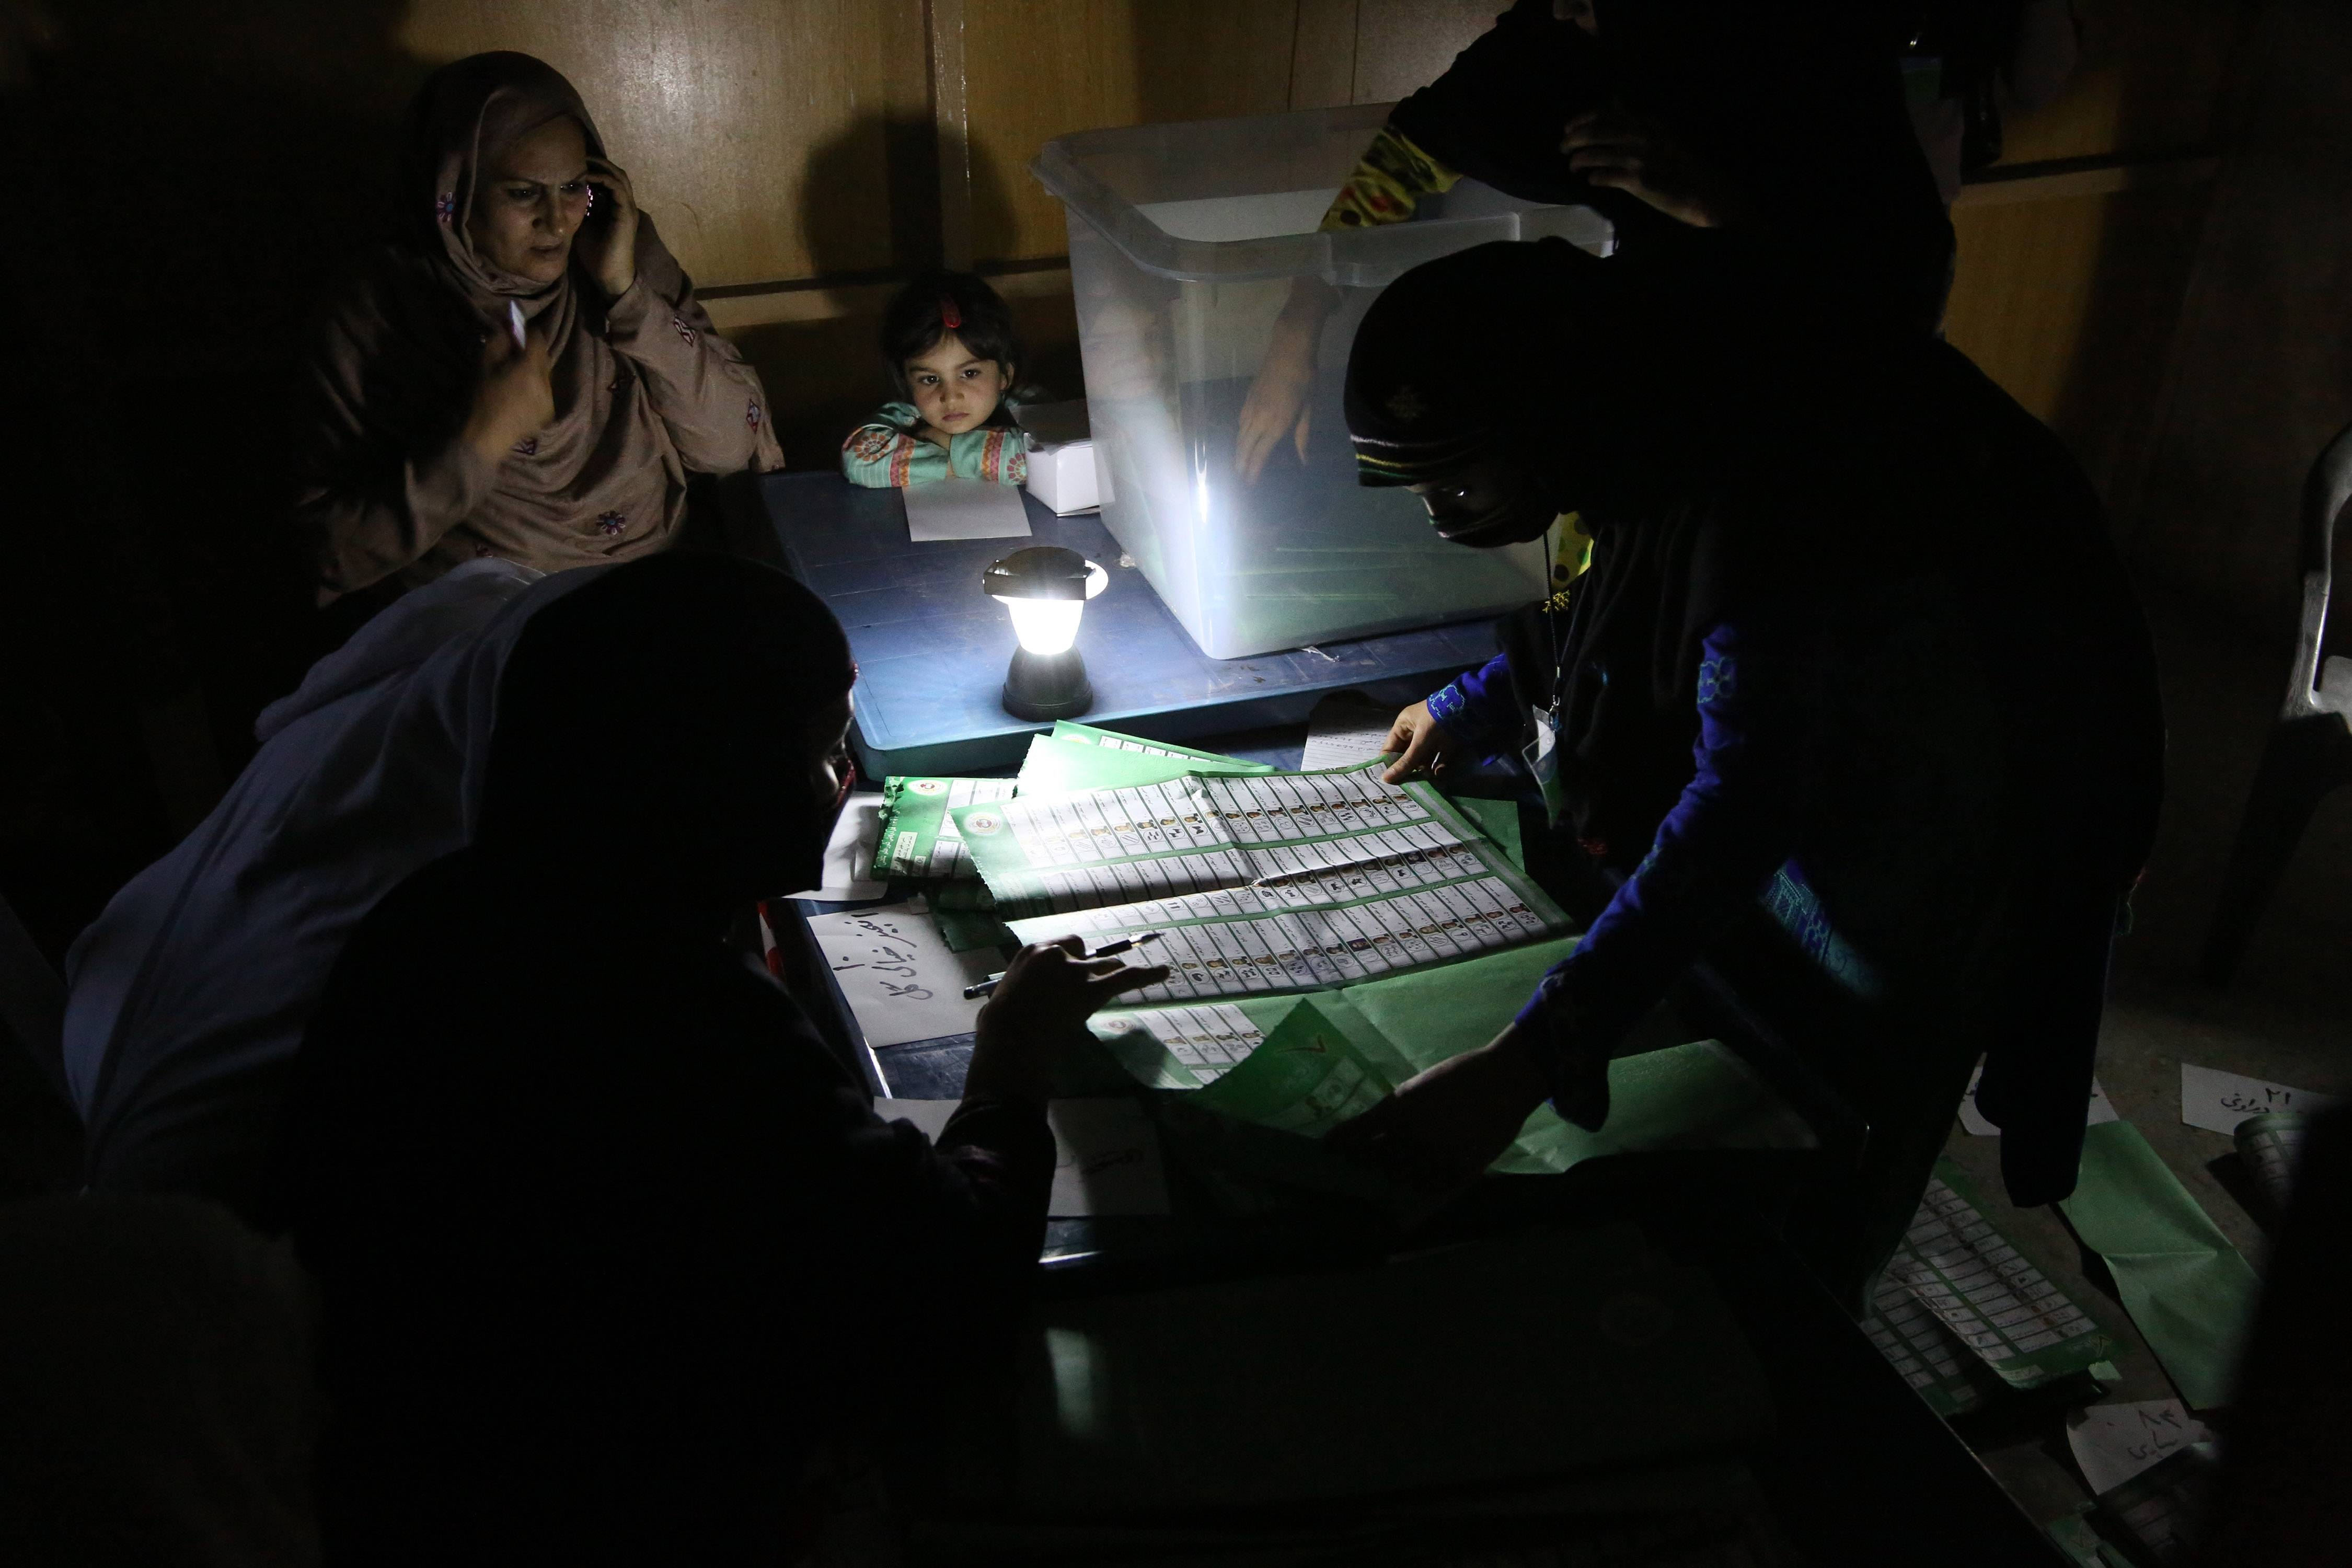 Q&A: No quick finish expected for Afghan elections